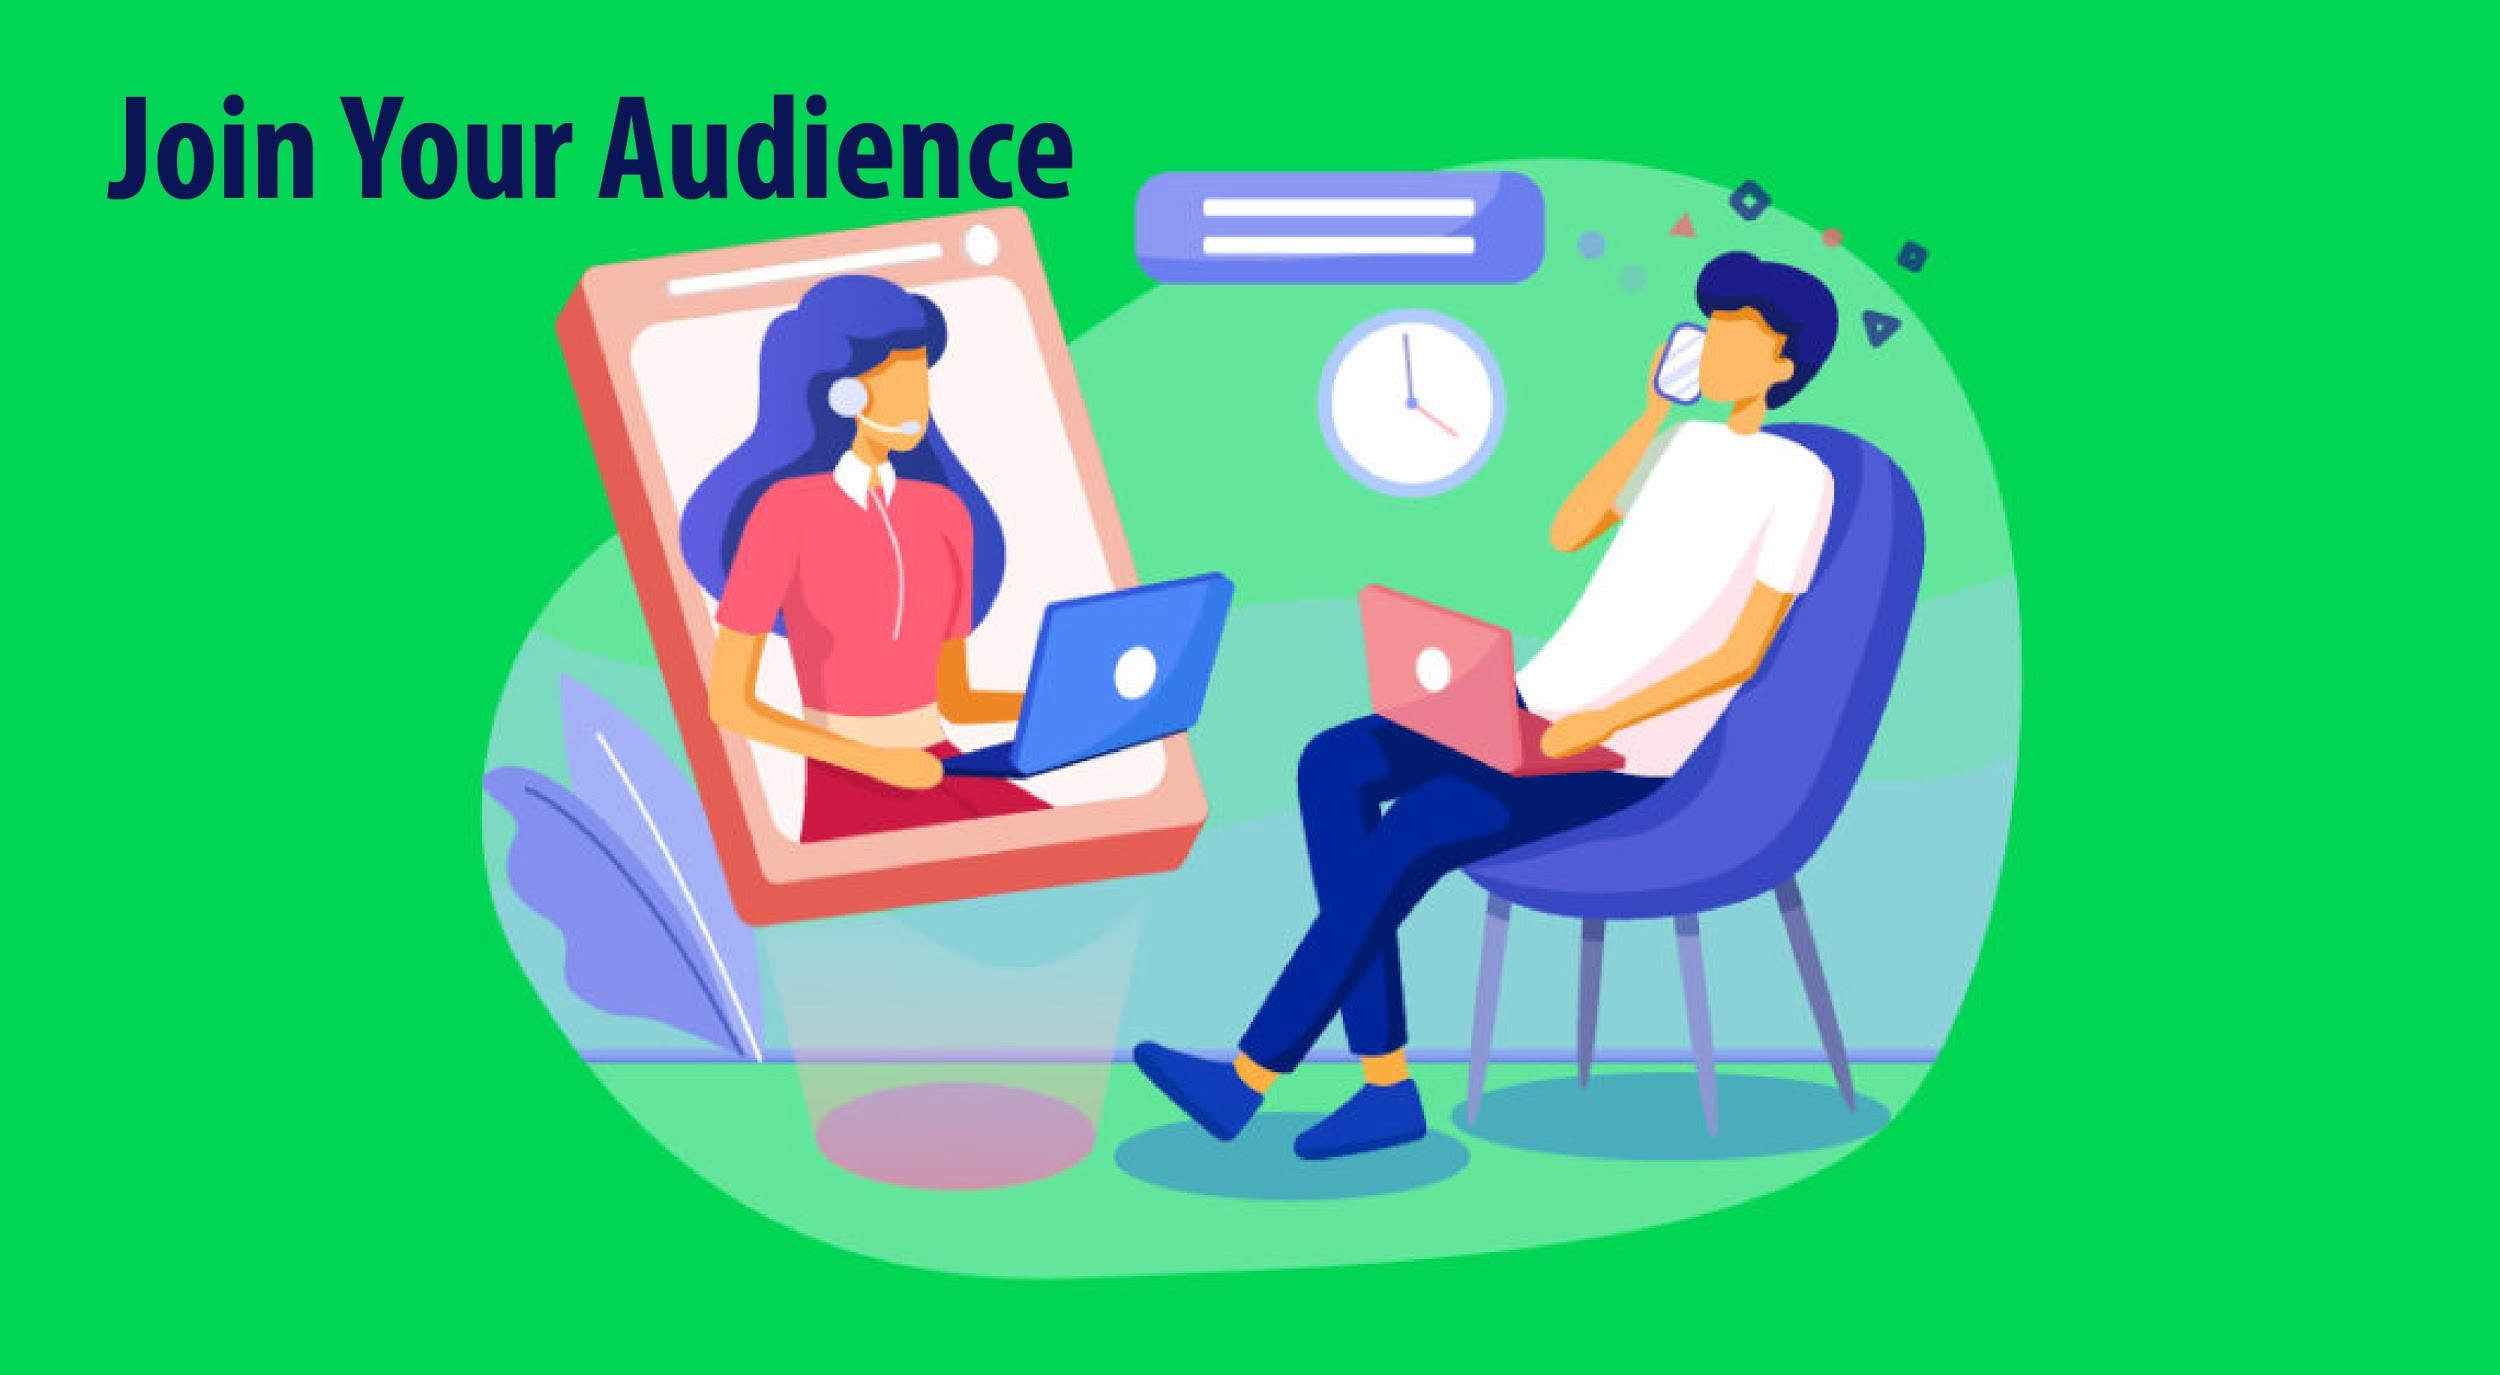 Join Your Audience